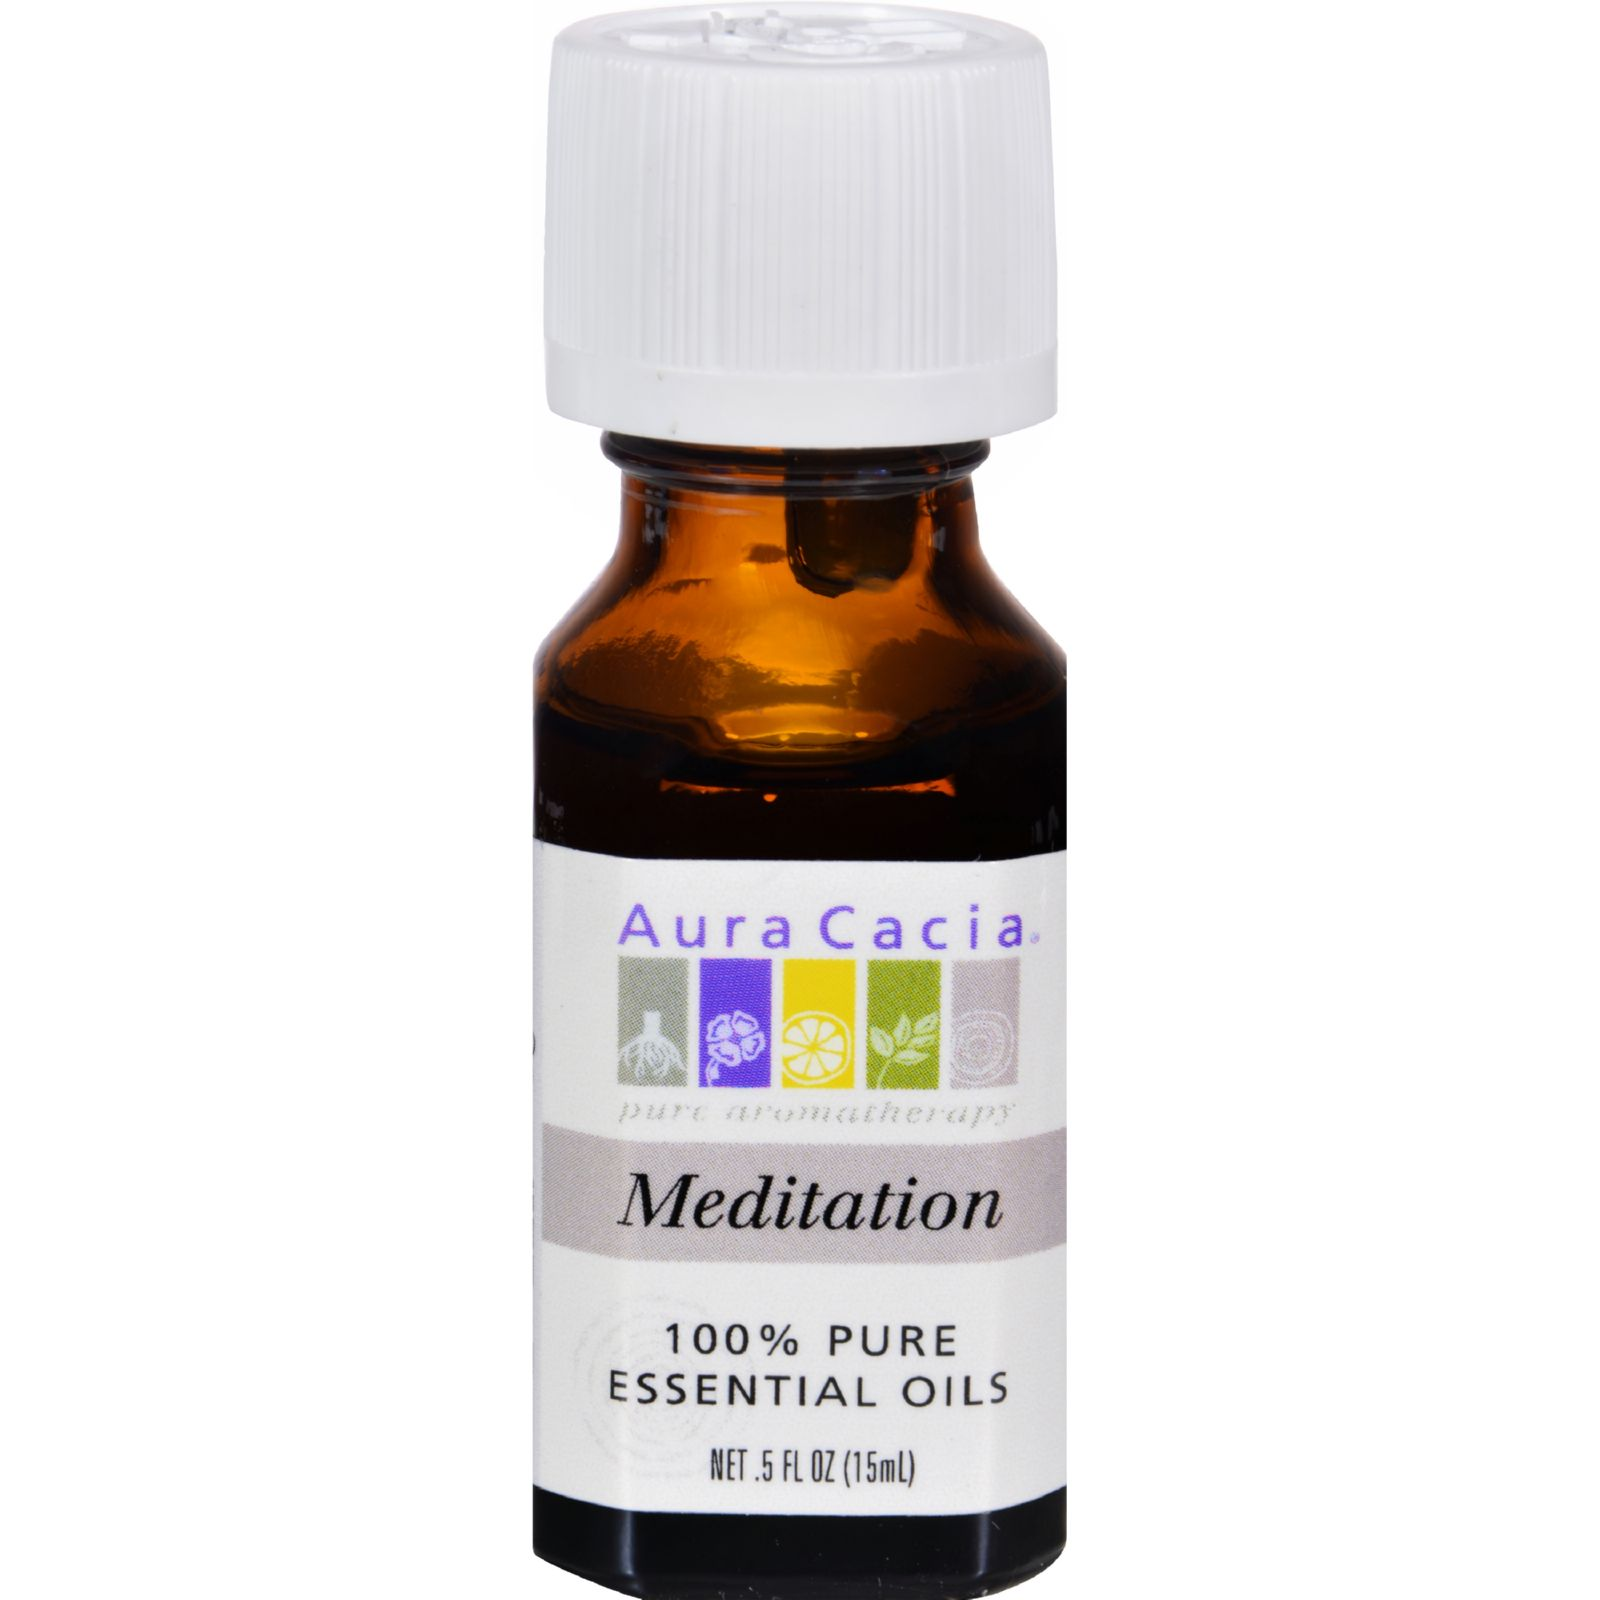 Aura Cacia Essential Oil Blend Meditation - 0.5 fl oz